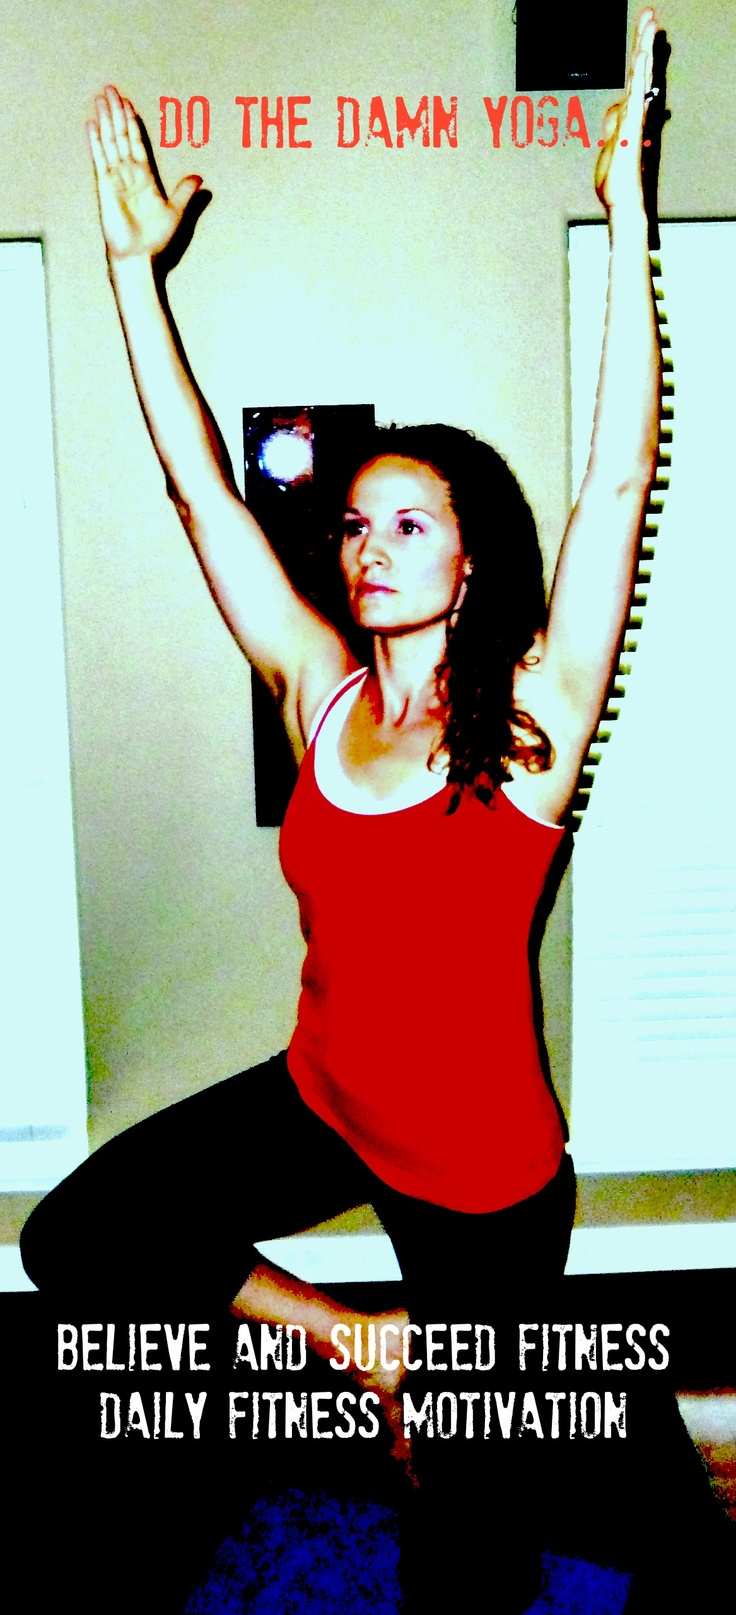 Yes, the P90X Yoga is 90 minutes!